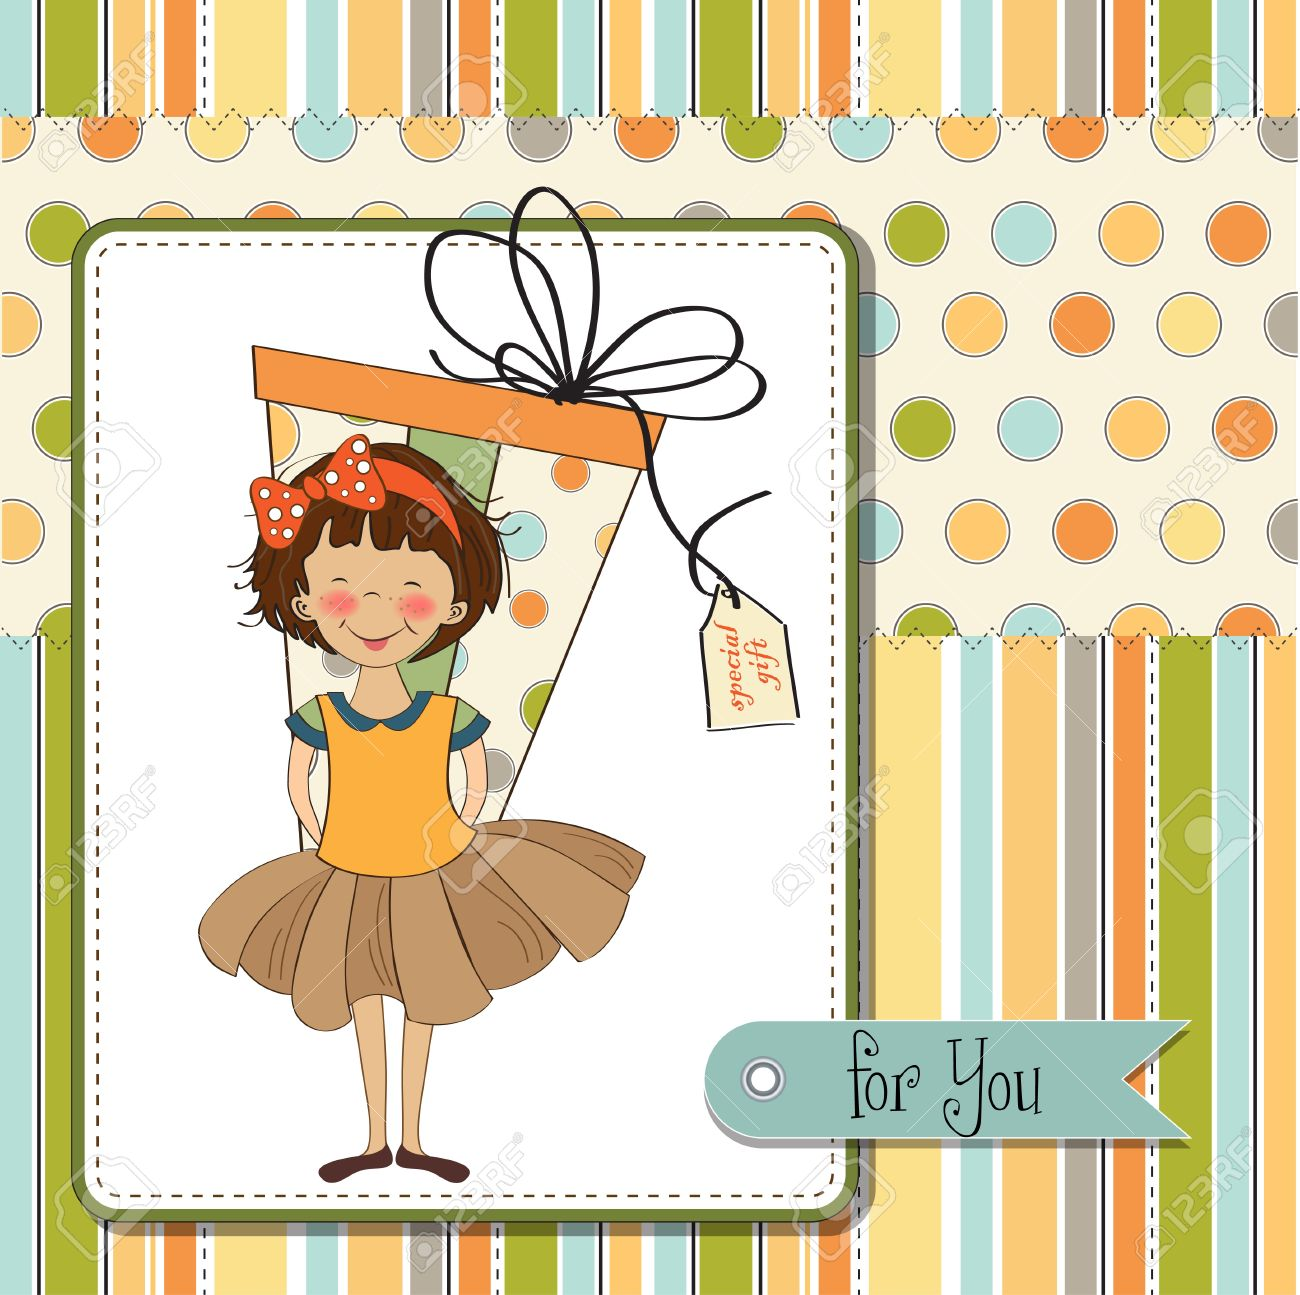 happy birthday young girl ; 11842064-cute-little-girl-hidden-behind-boxes-of-gifts-happy-birthday-greeting-card